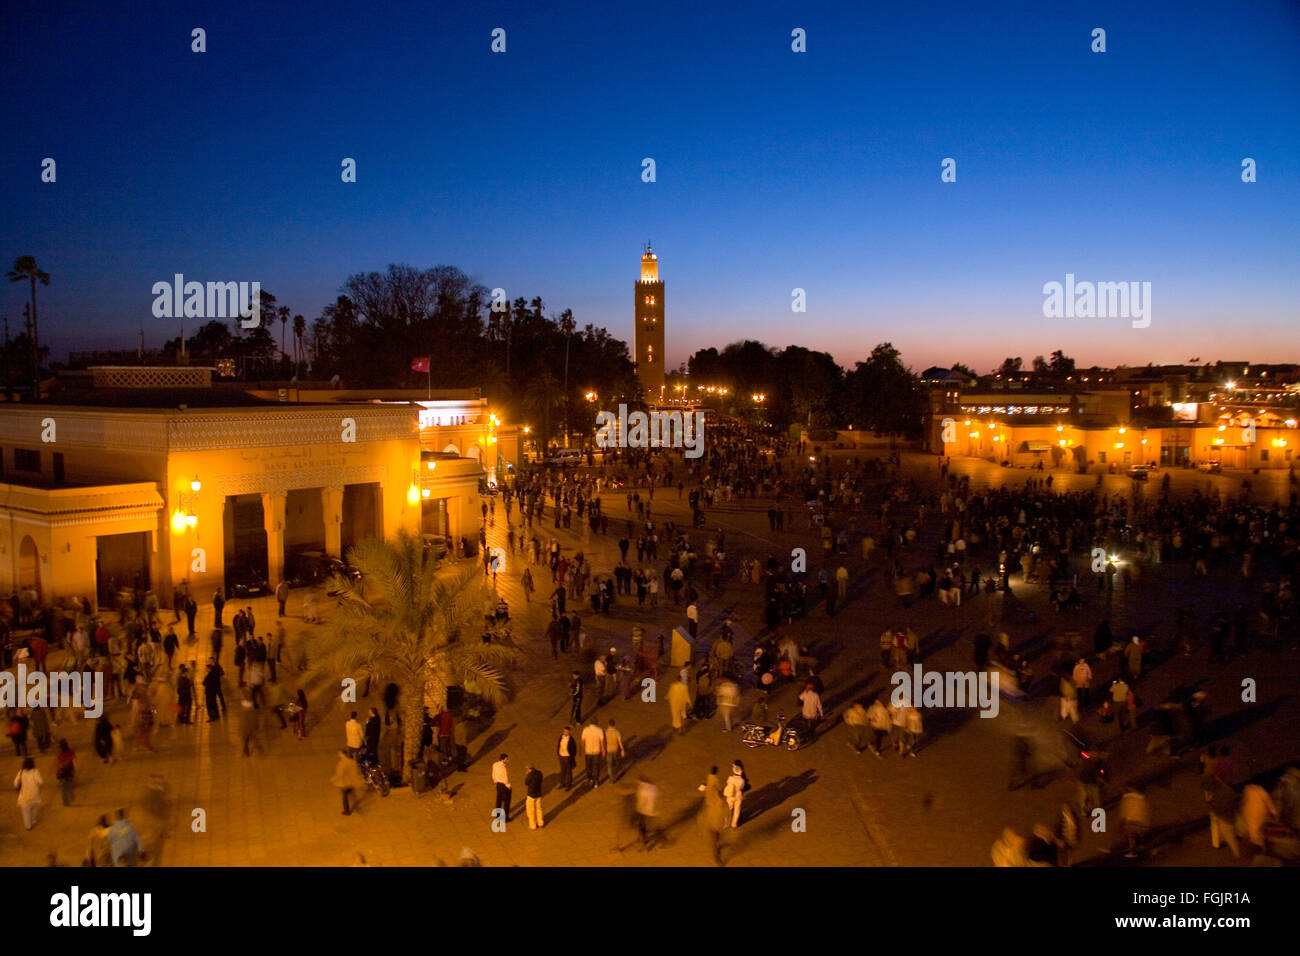 The La Koutoubia Mosque at sunset in Jemaa El Fna Square,  Marrakech . - Stock Image